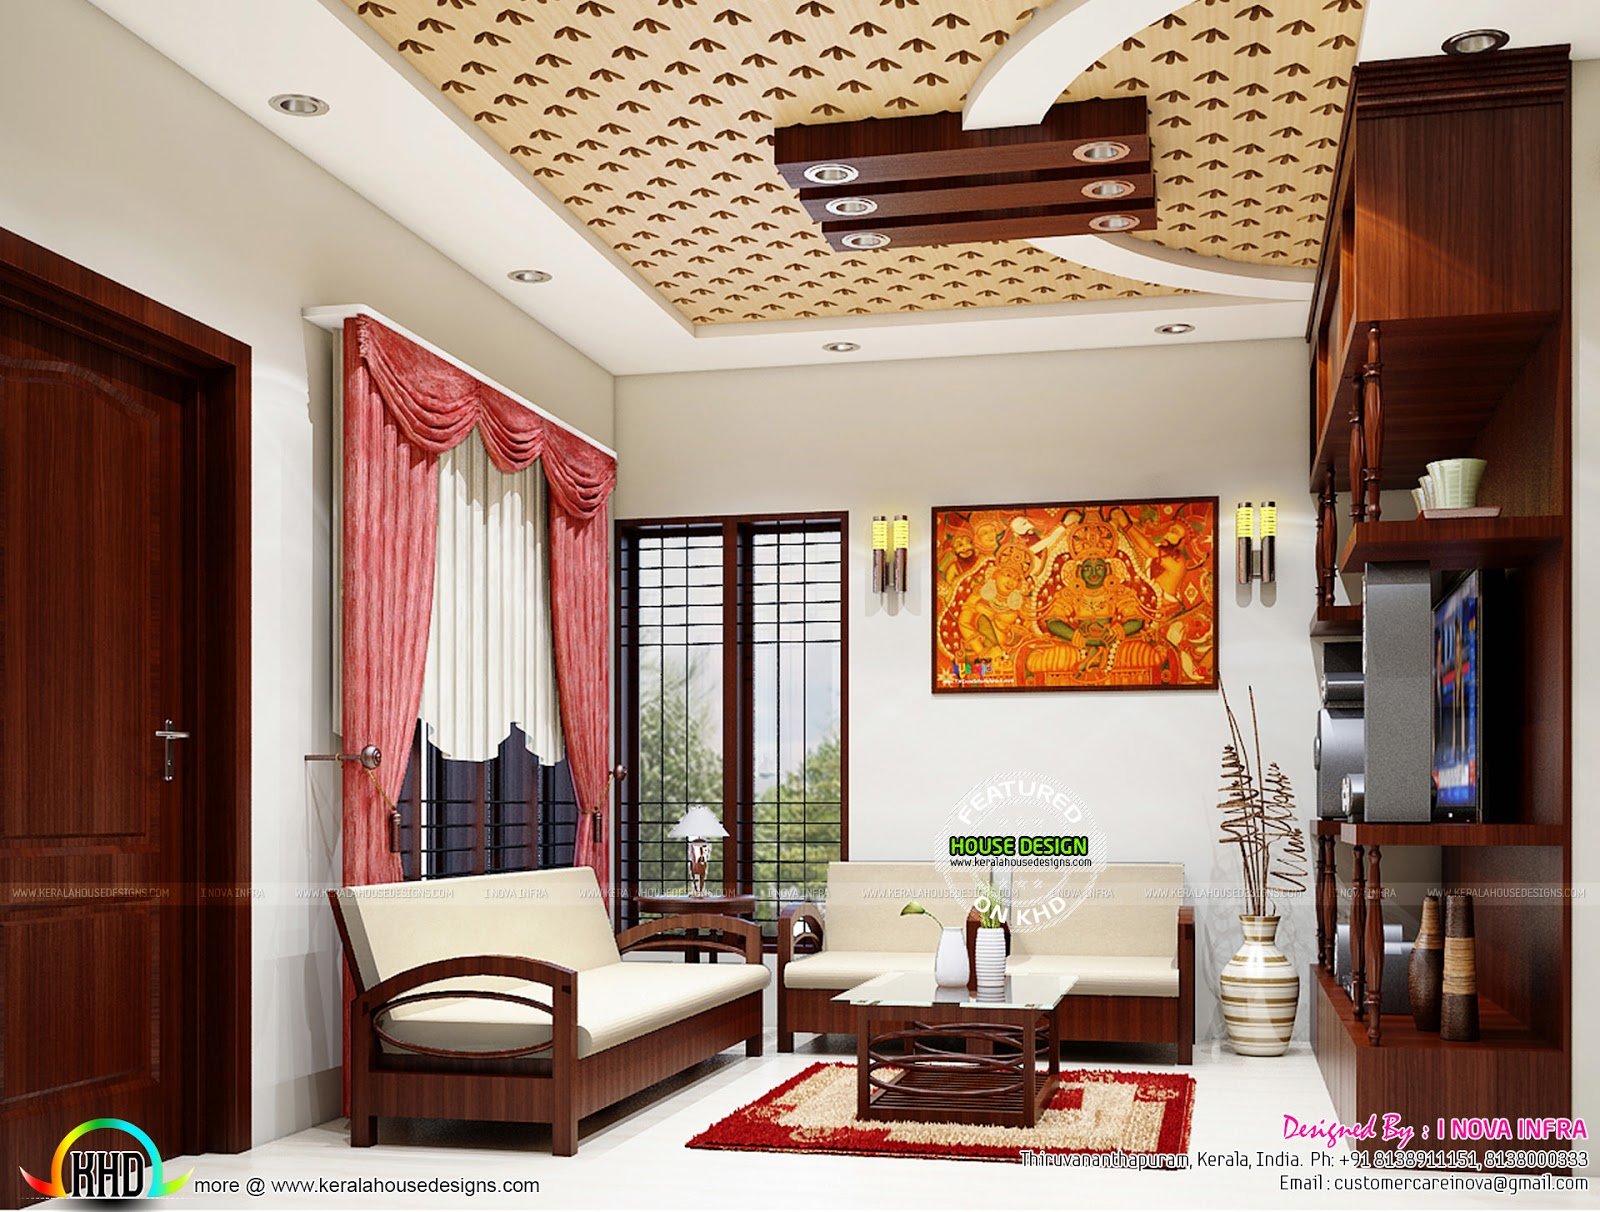 Kerala traditional interiors kerala home design and floor plans - Room house design ...